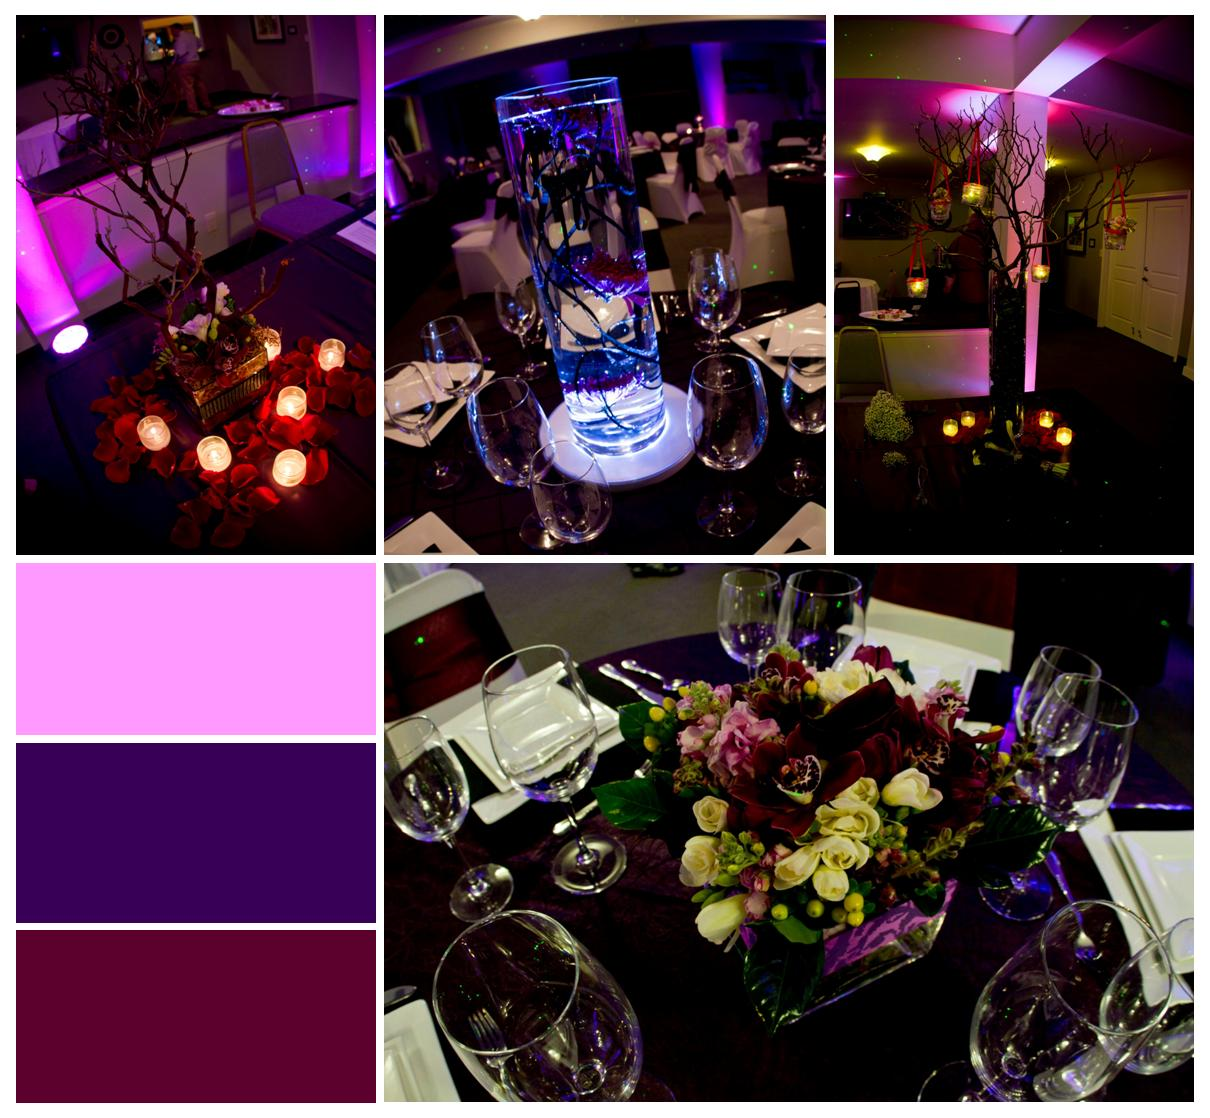 Eggplant And Red And Purple Wedding Ideas: Eggplant, Fuchsia & Red: Wedding Events & Expos